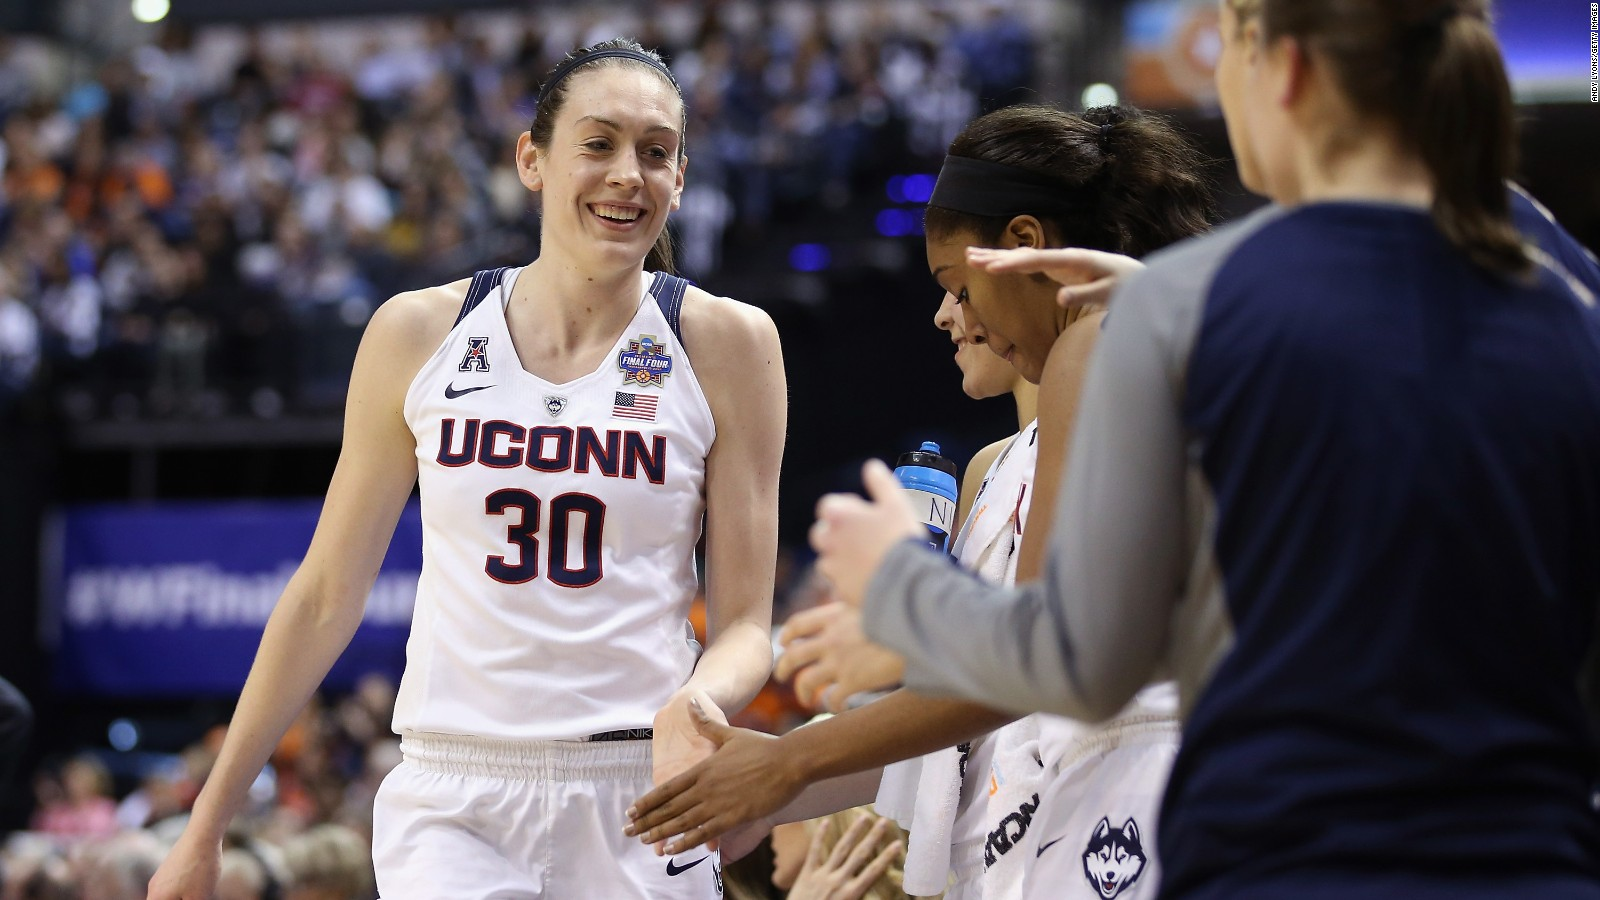 UConn aims for unprecedented fourth consecutive title - CNN